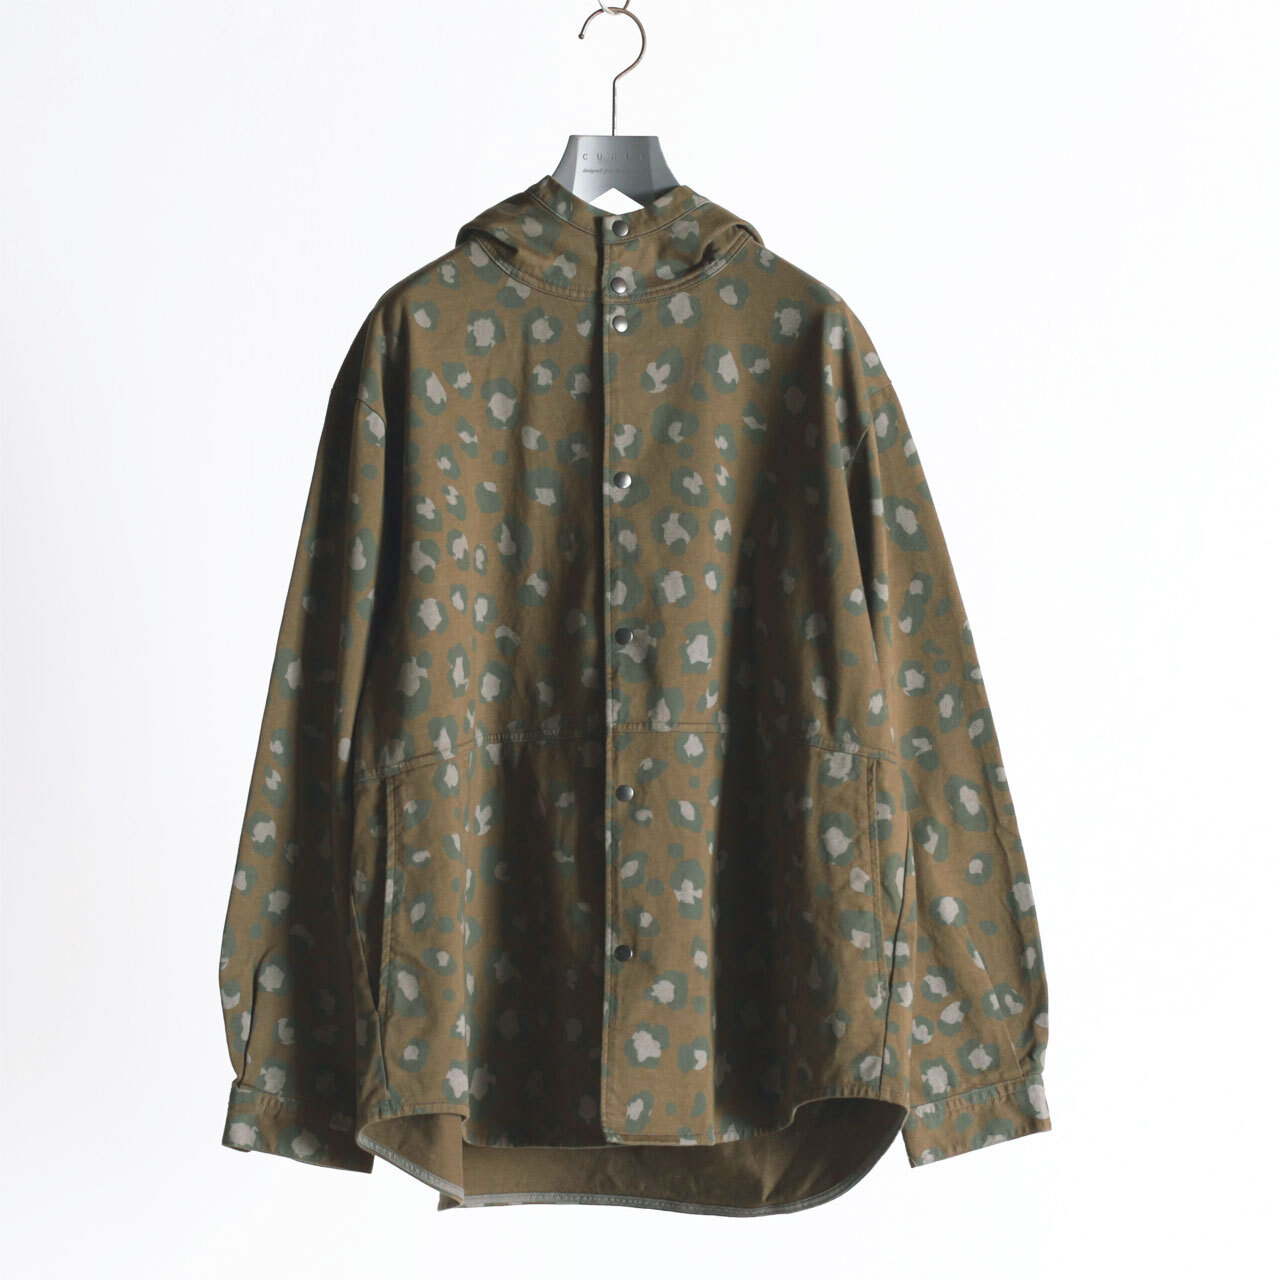 "CURLY&Co./DELIGHT HOOD SHIRCKET ""Speckle Camo"" with RAIN DELIGHT"